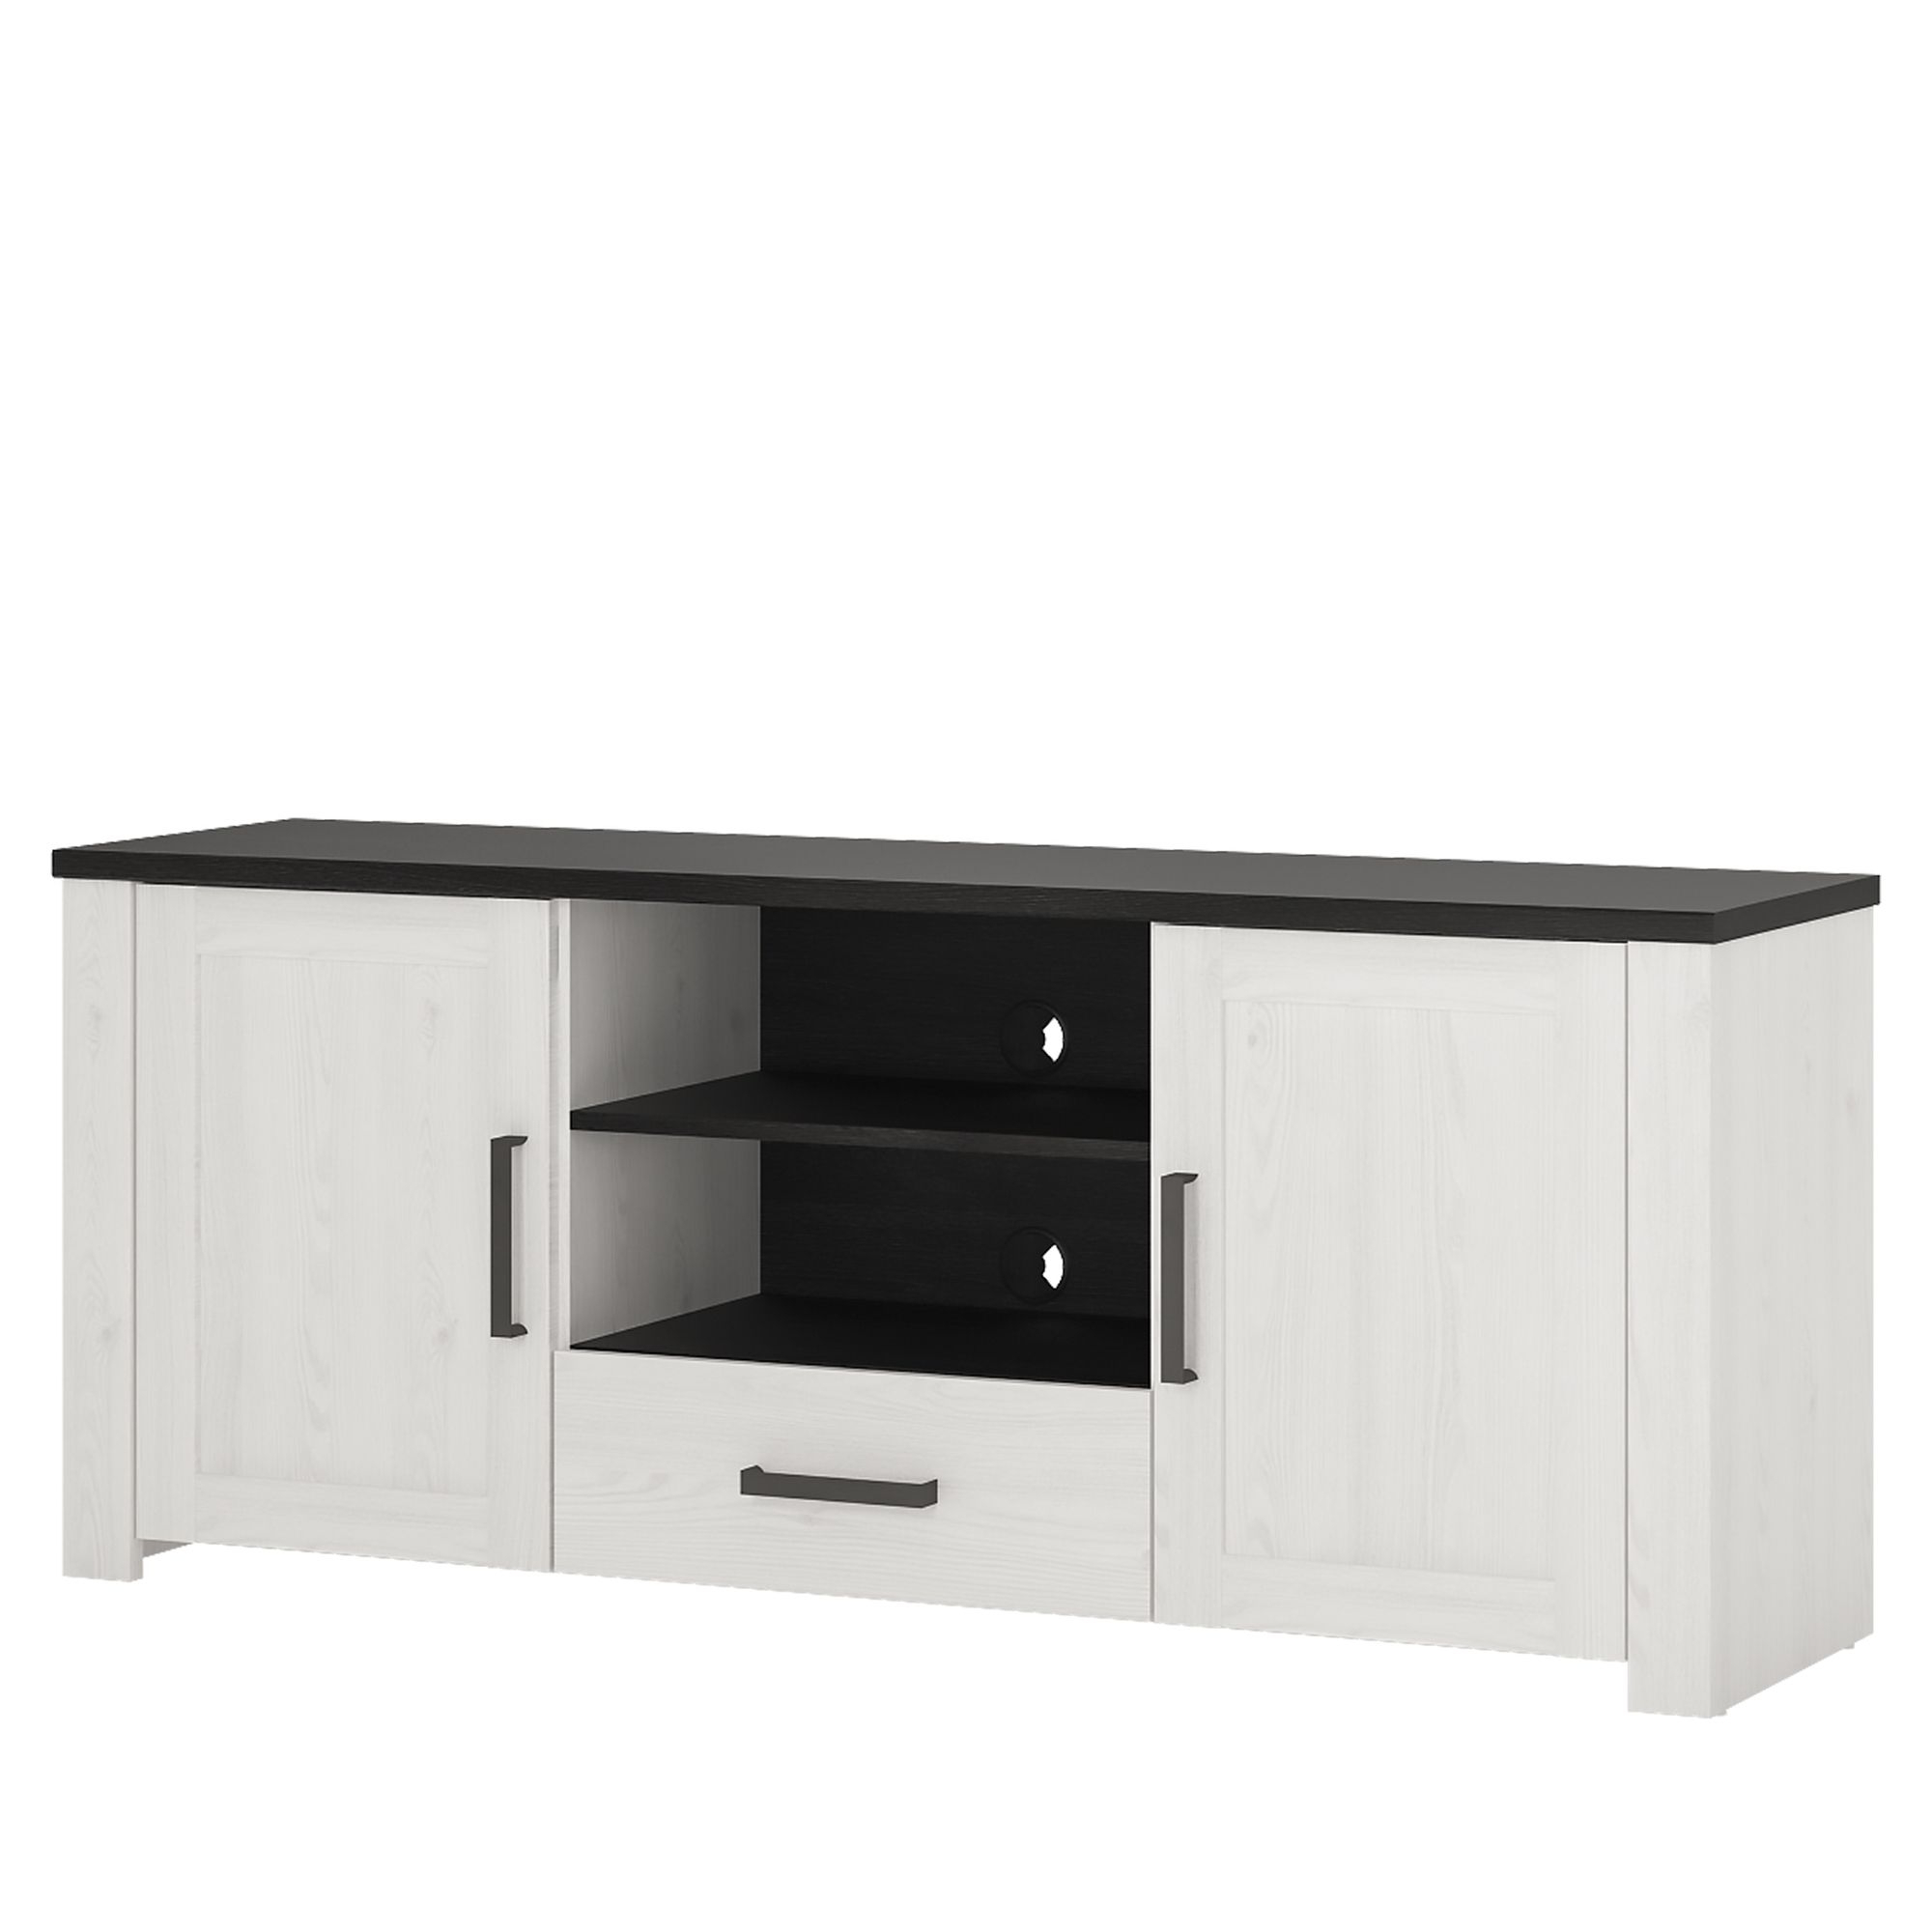 Tiva Ladder Tv Stands Throughout Most Recently Released Provence High Tv Cabinet 2 Door 1 Drawer (View 3 of 10)